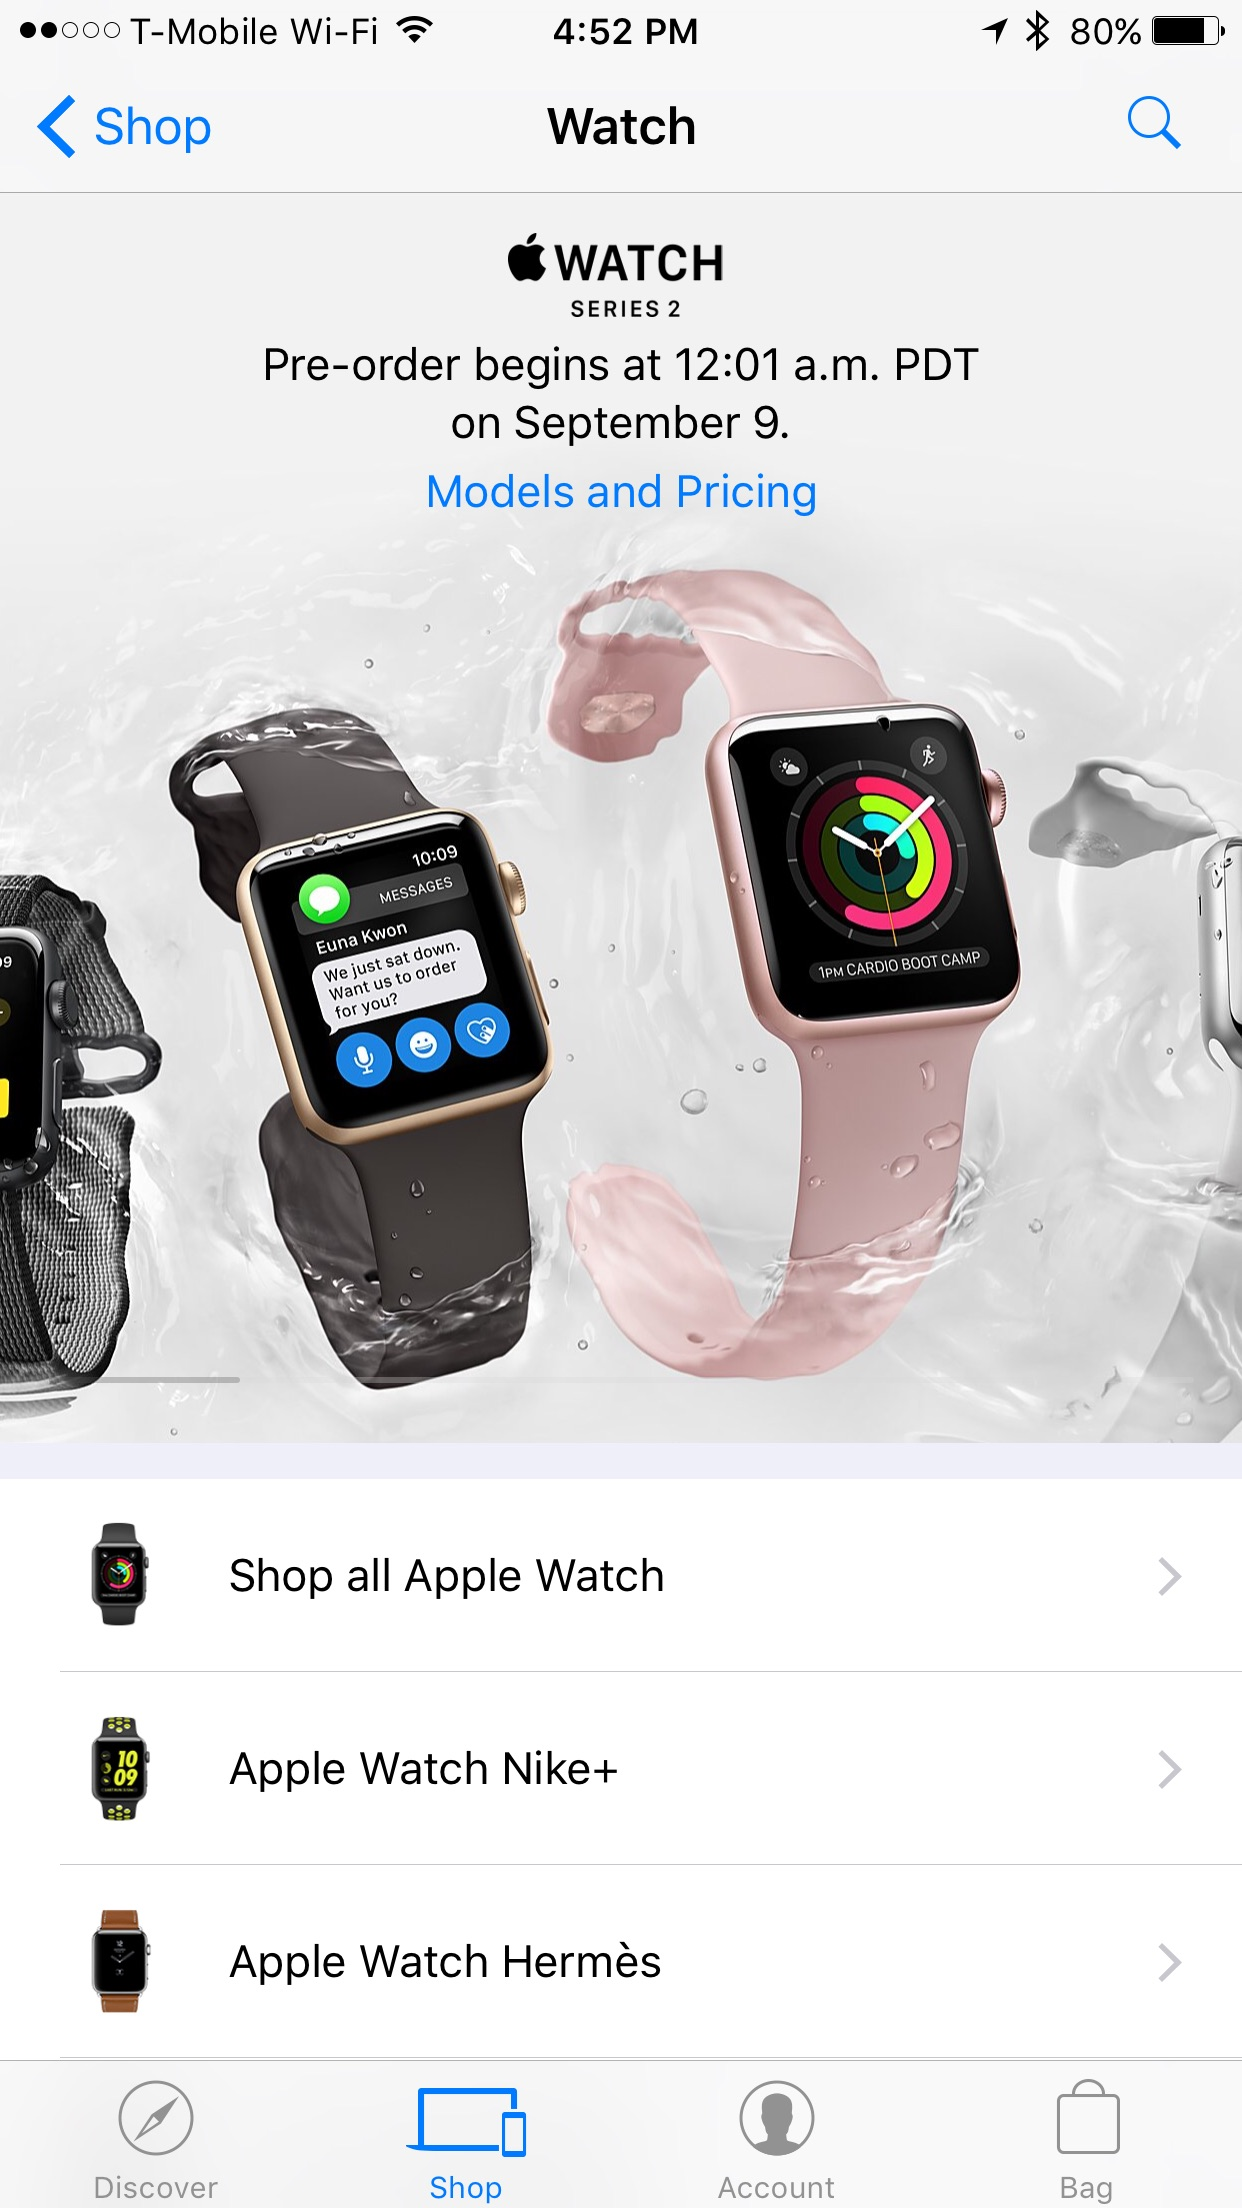 Pre-order the new Apple Watch Series 2 via the Apple Store app on Sep. 9 at 12:01 a.m. PDT.